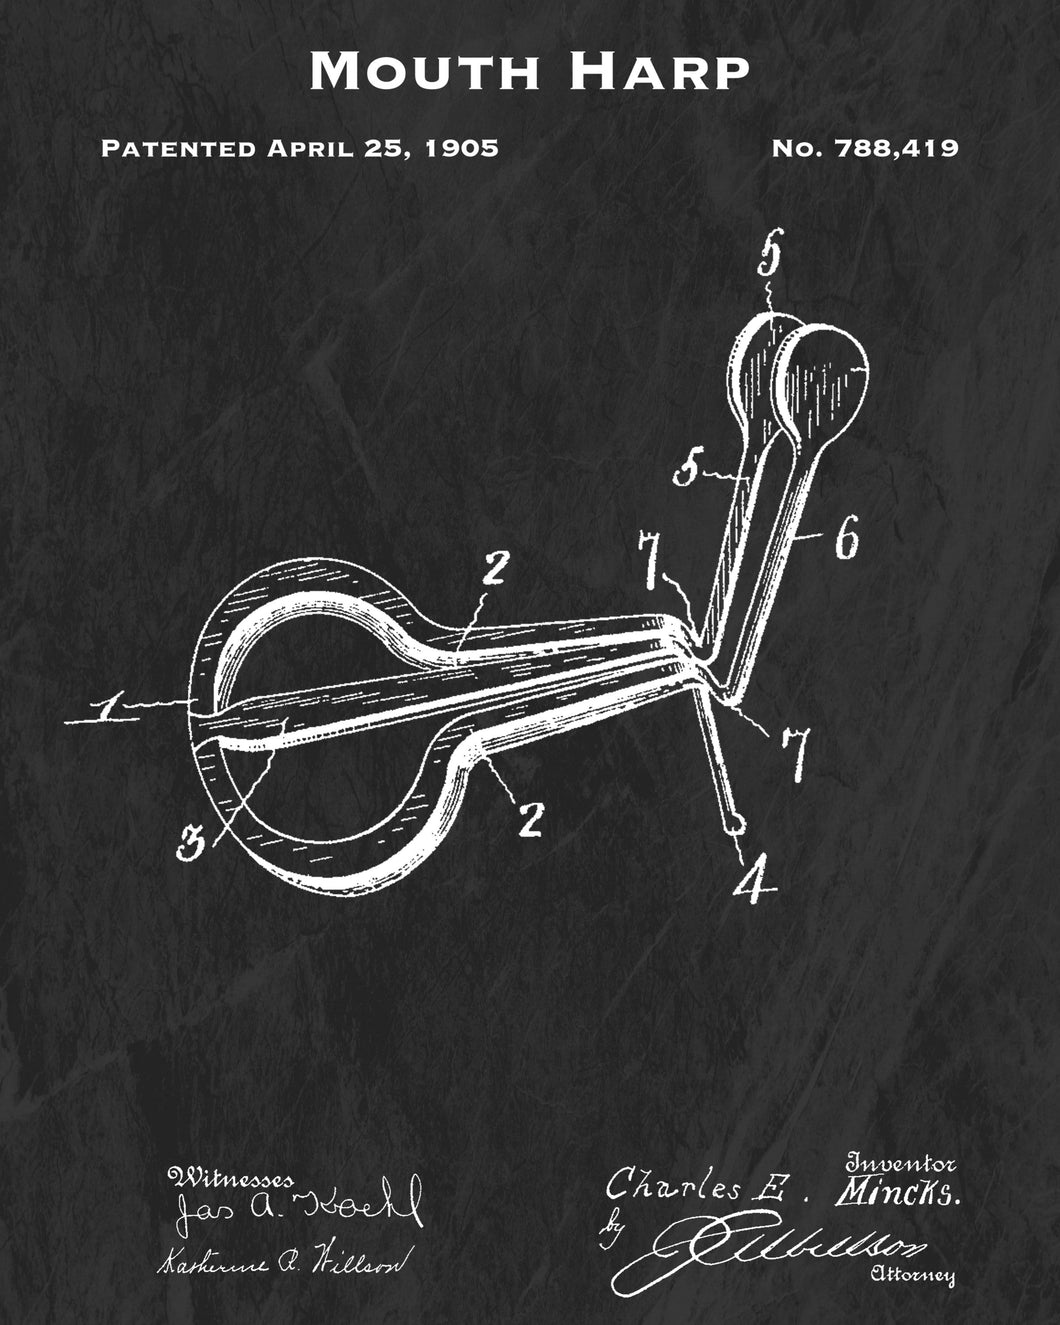 1905 Mouth Harp Patent Art Print